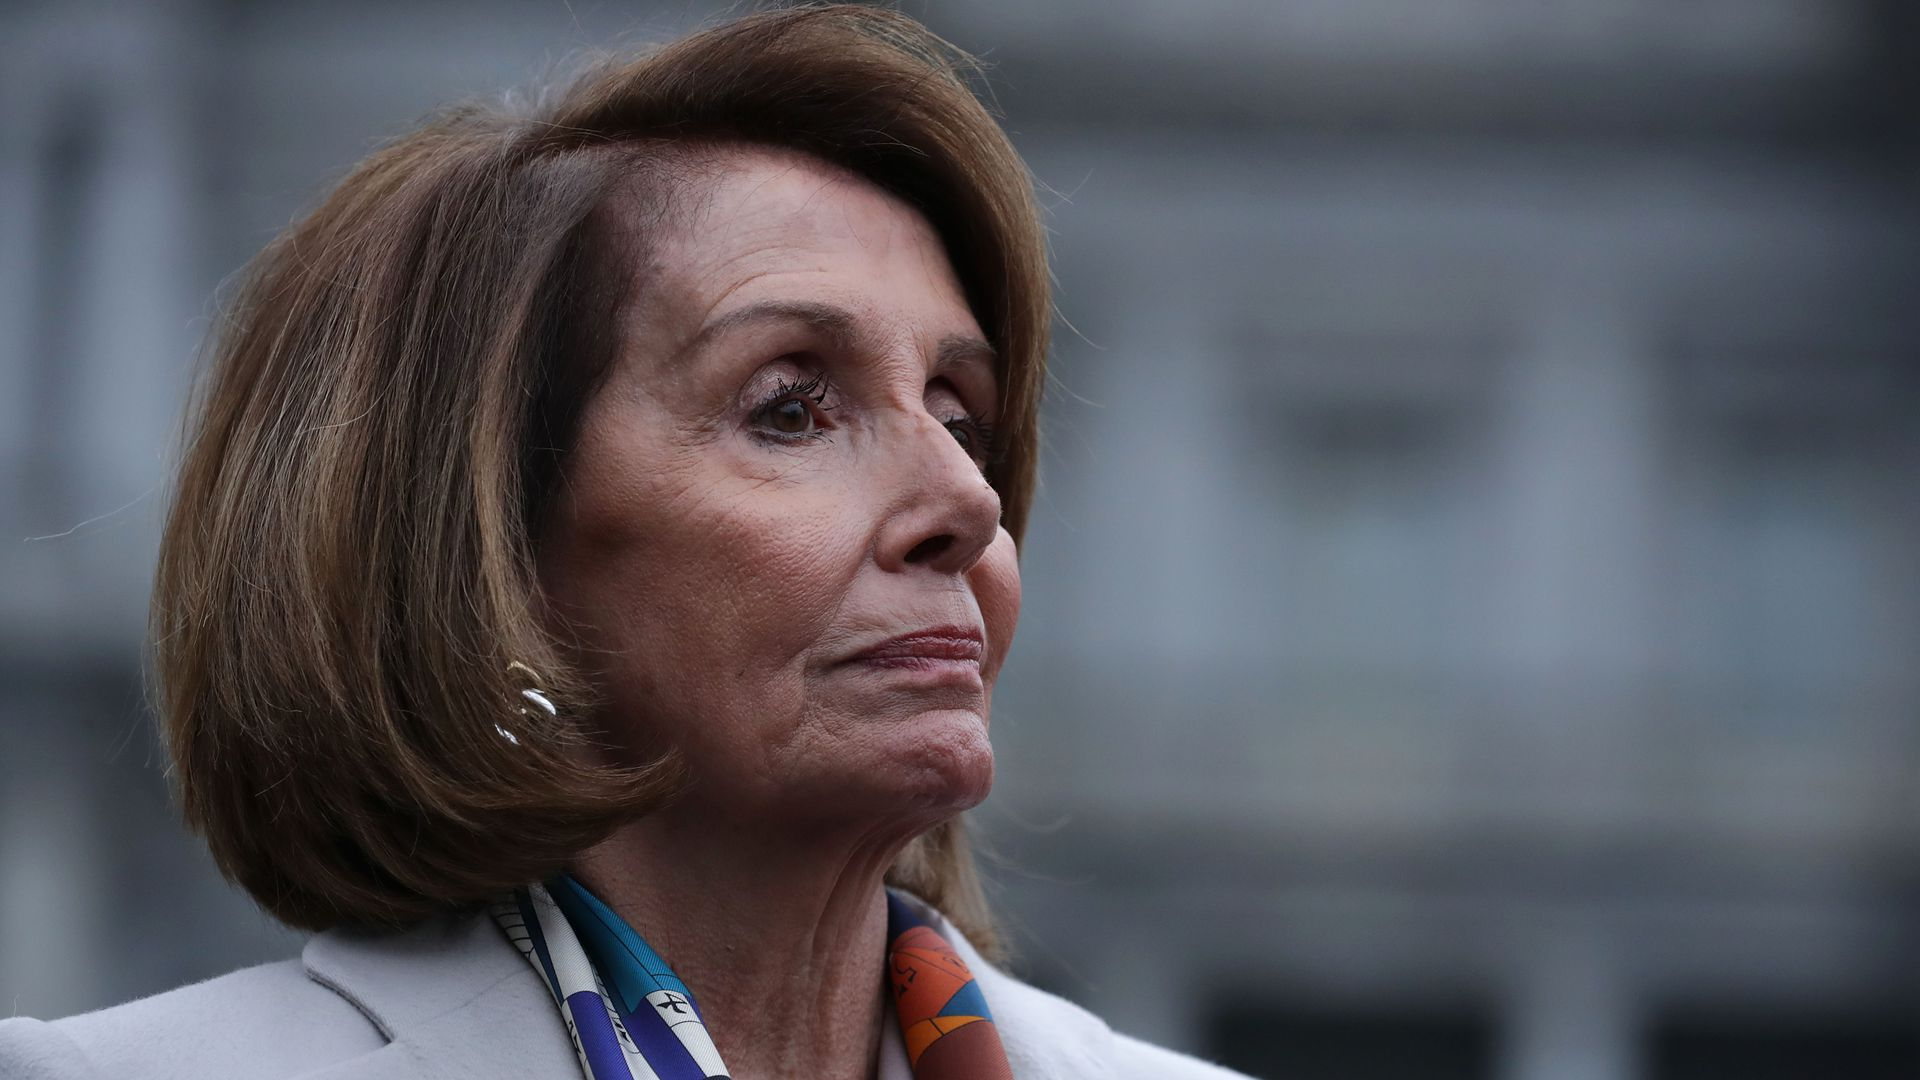 Nancy Pelosi looks regal.